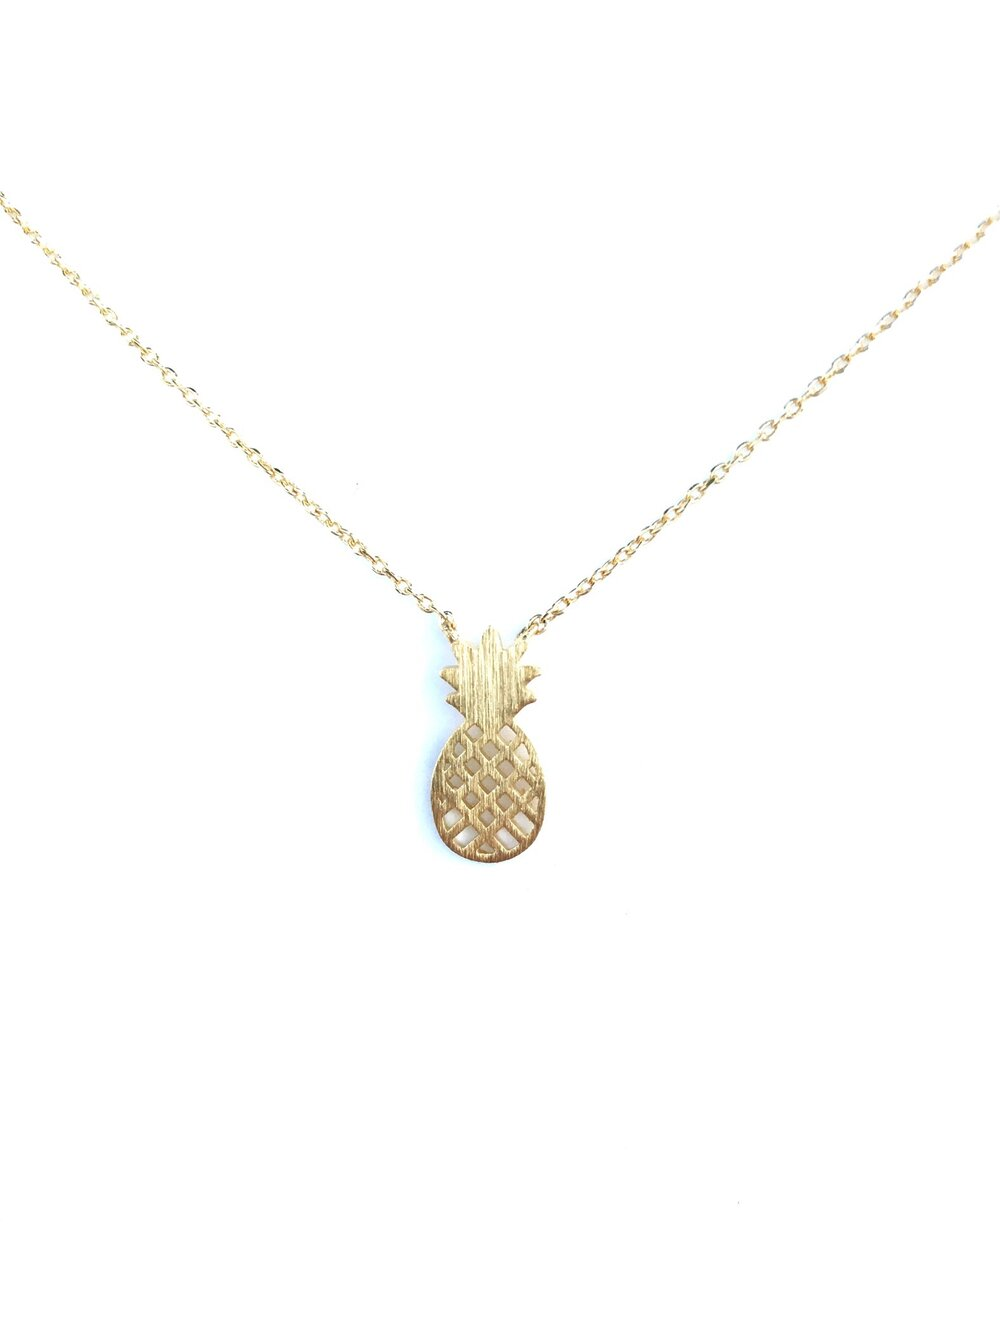 Pineapple Dainty Necklace